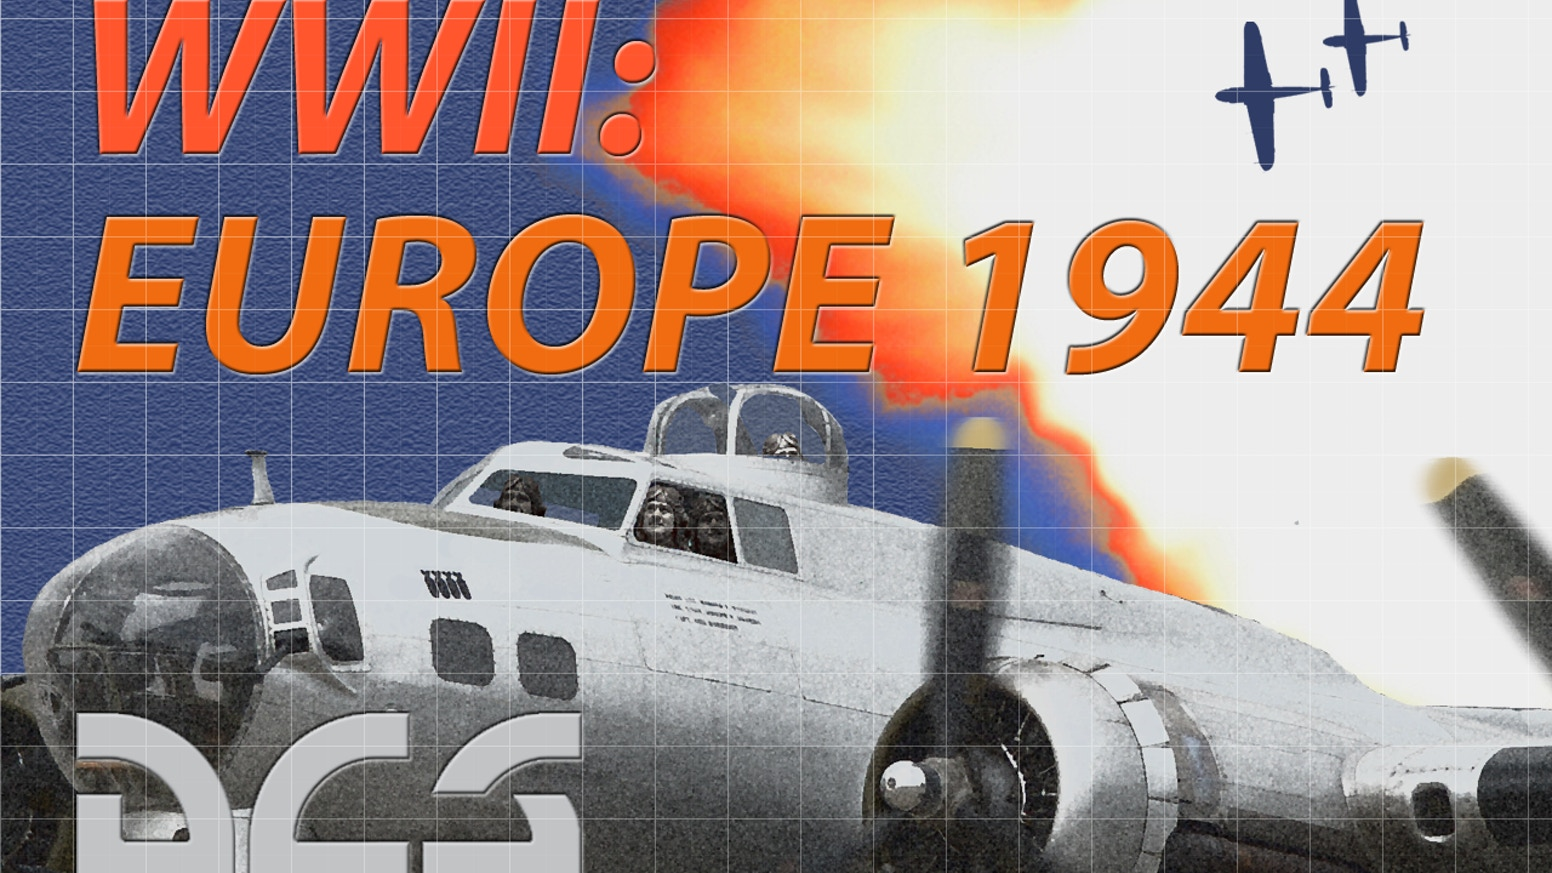 Dcs wwii europe 1944 by ilya shevchenko kickstarter welcome to dcs wwii europe 1944 the start of an exciting new flight simulation series gumiabroncs Image collections